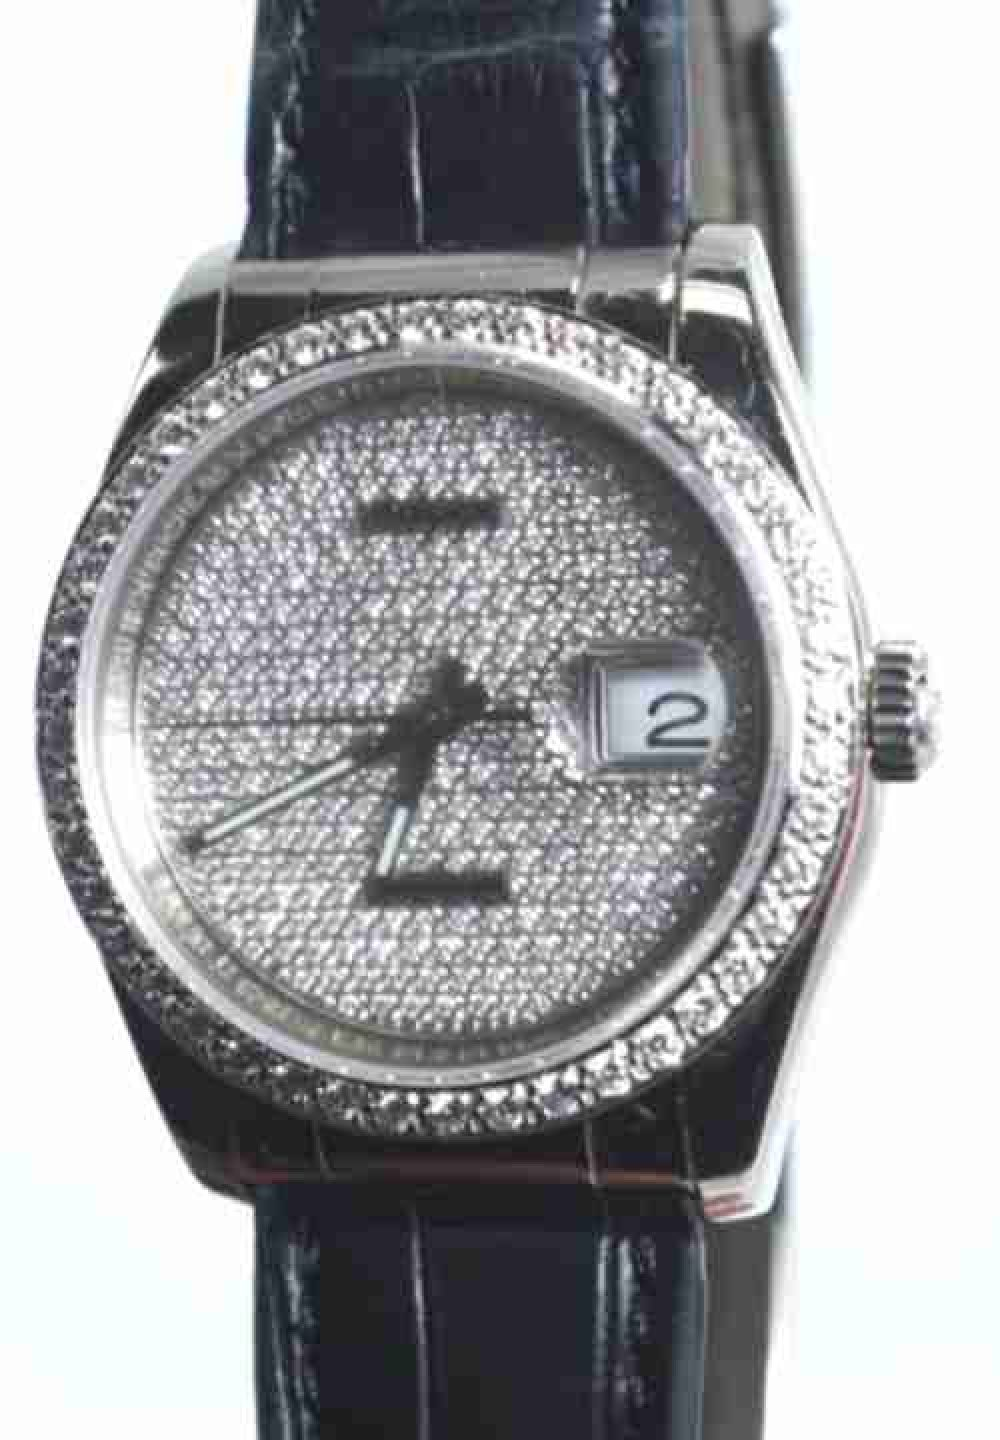 Rolex-Oyster-Perpetual-Datejust-18k-White-Gold-Diamond-Mens-Watch